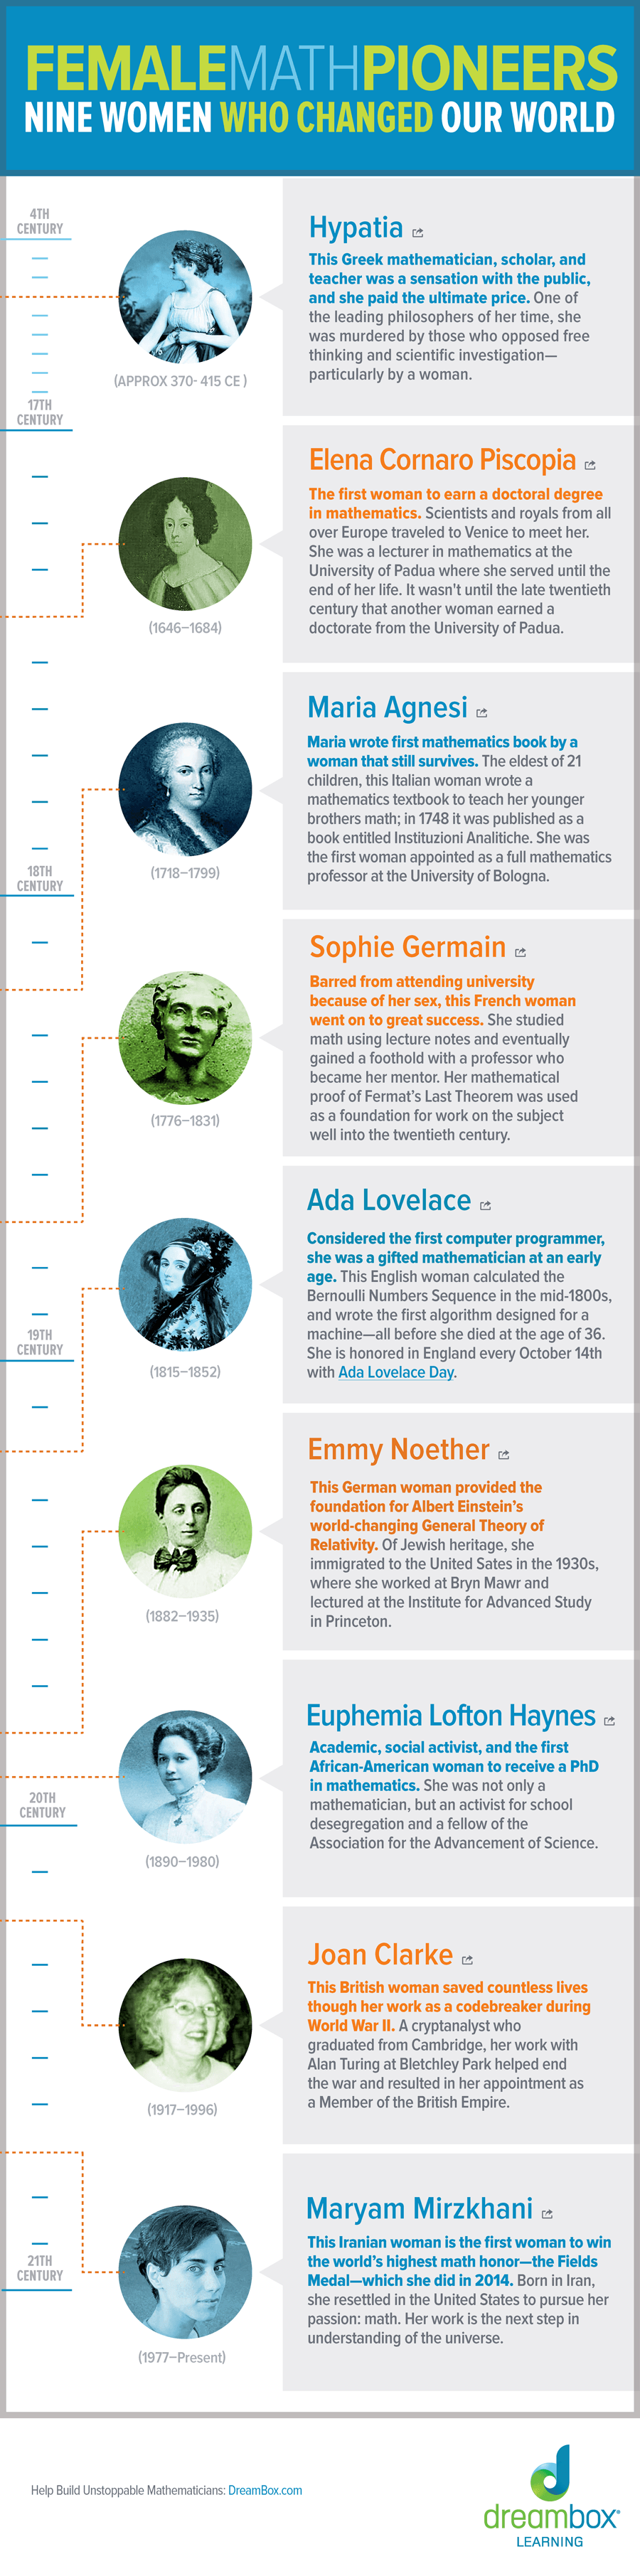 Female Math Pioneers Infographic